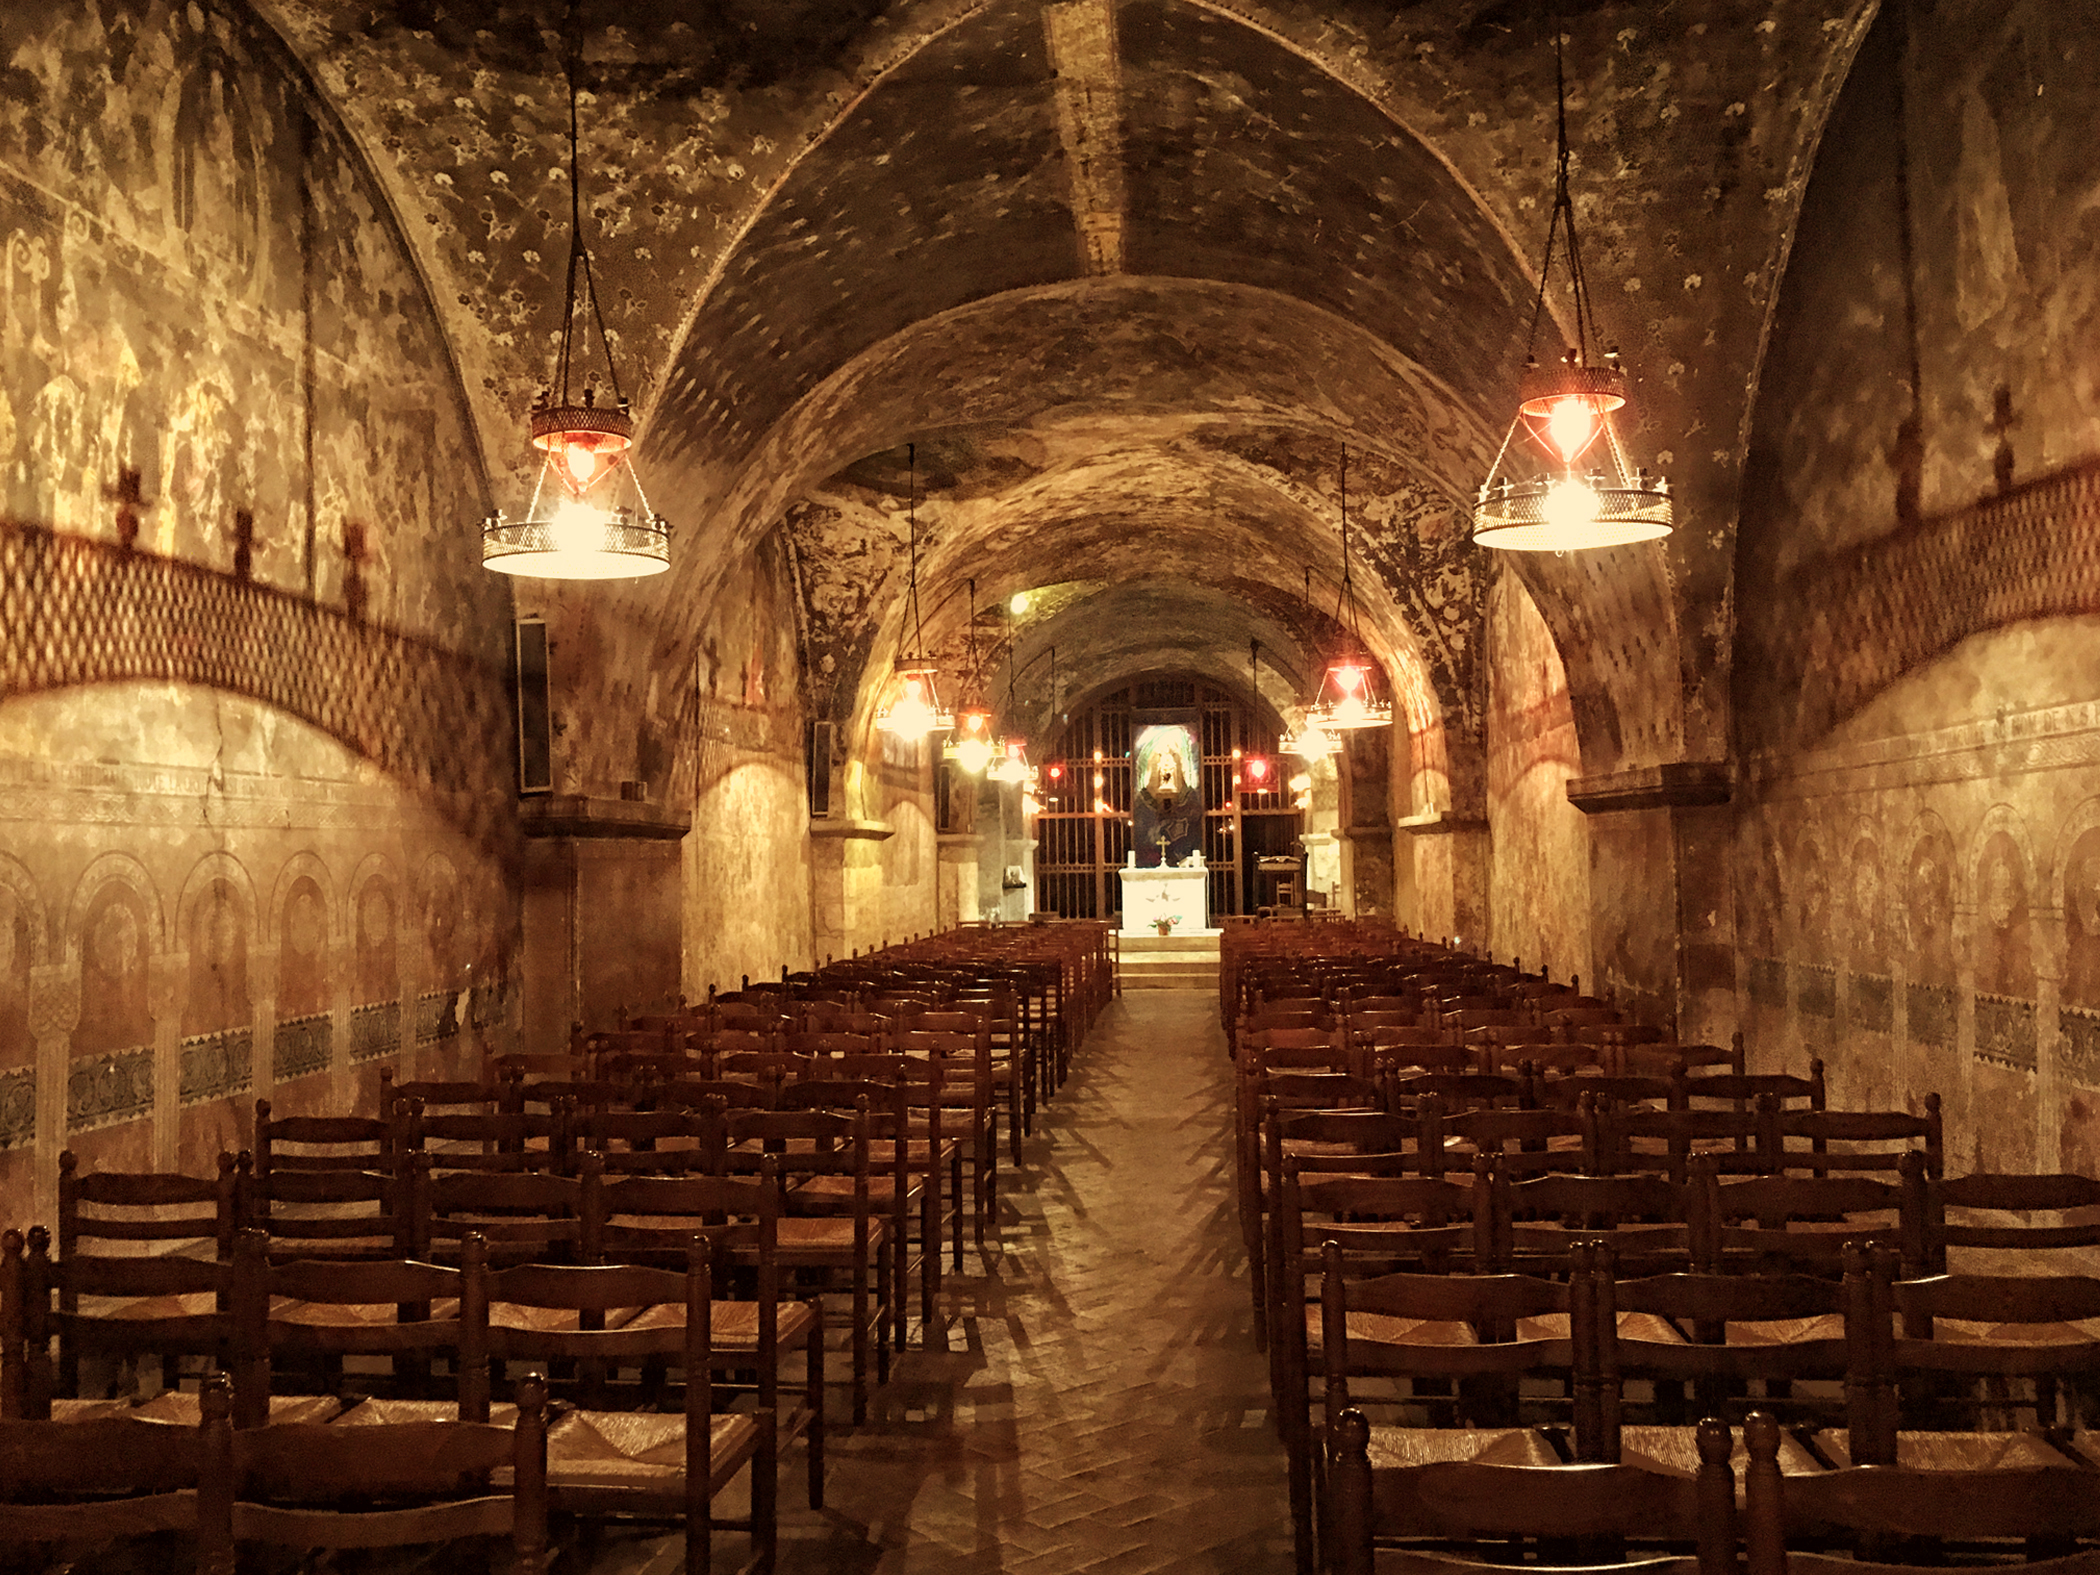 The Crypt of Chartres Cathedral